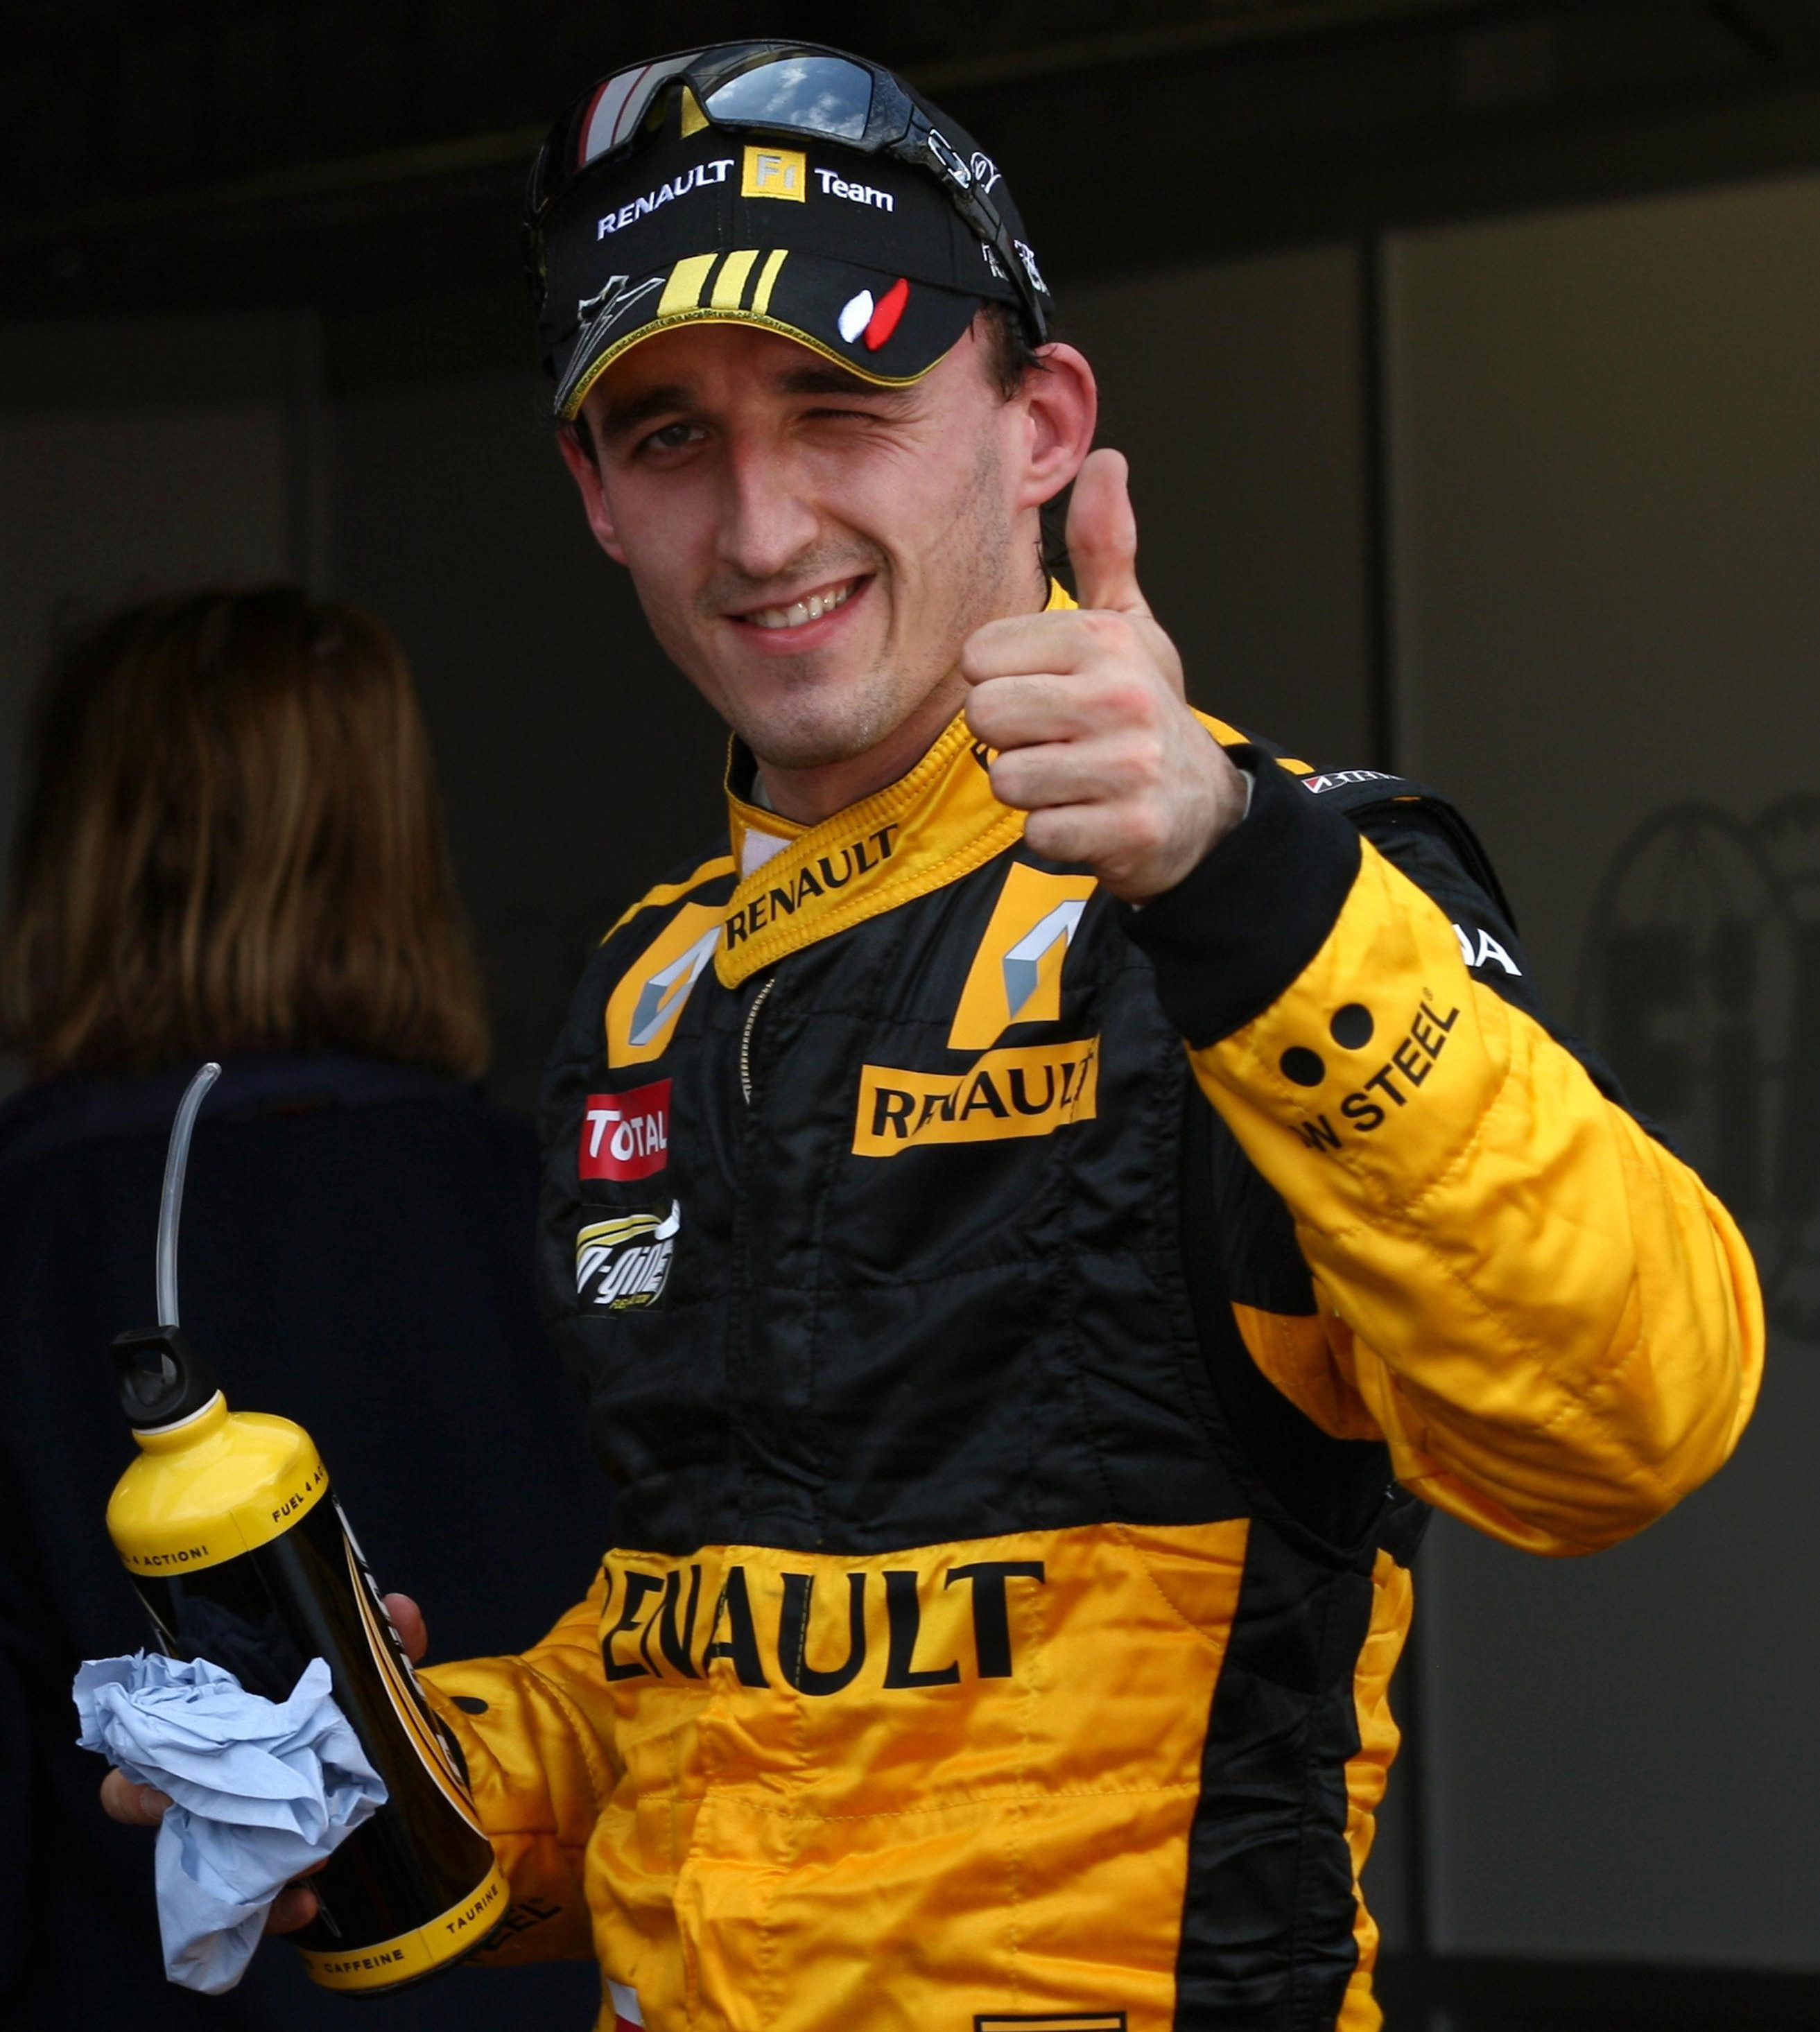 Kubica will race for Williams next season as he looks to resurrect his F1 career